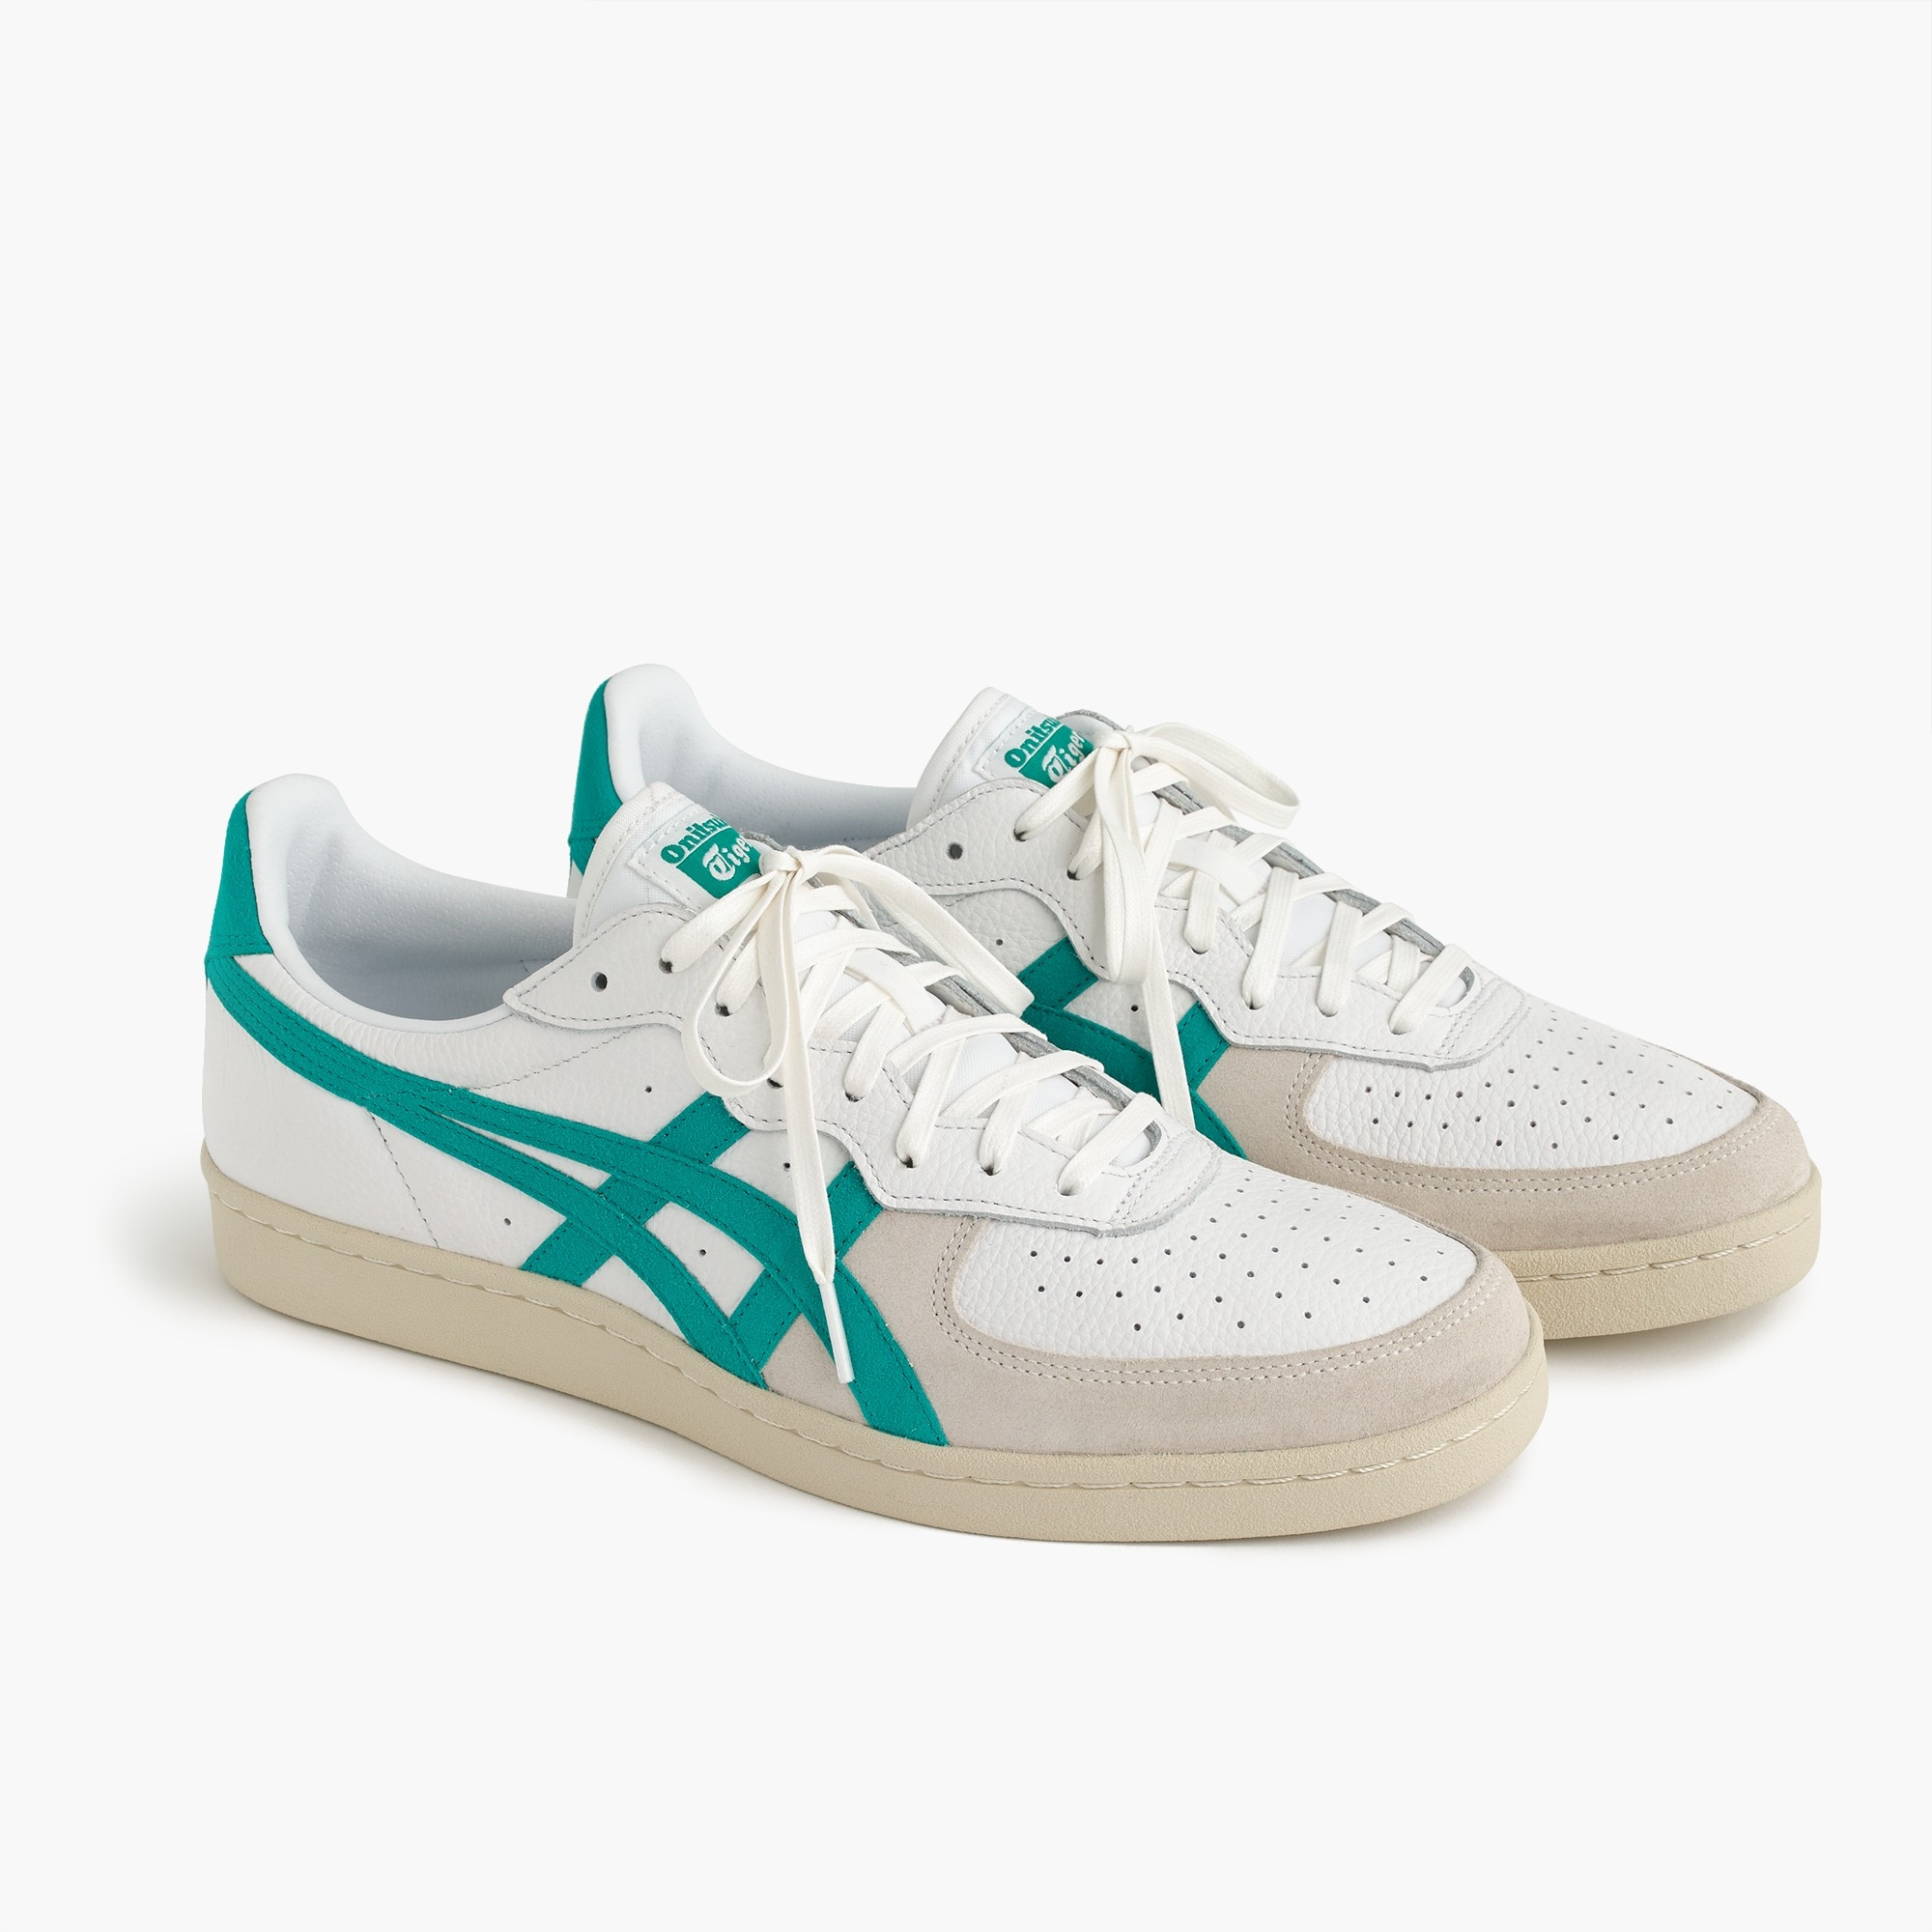 Onitsuka Tiger for J.Crew GSM™ sneakers in green